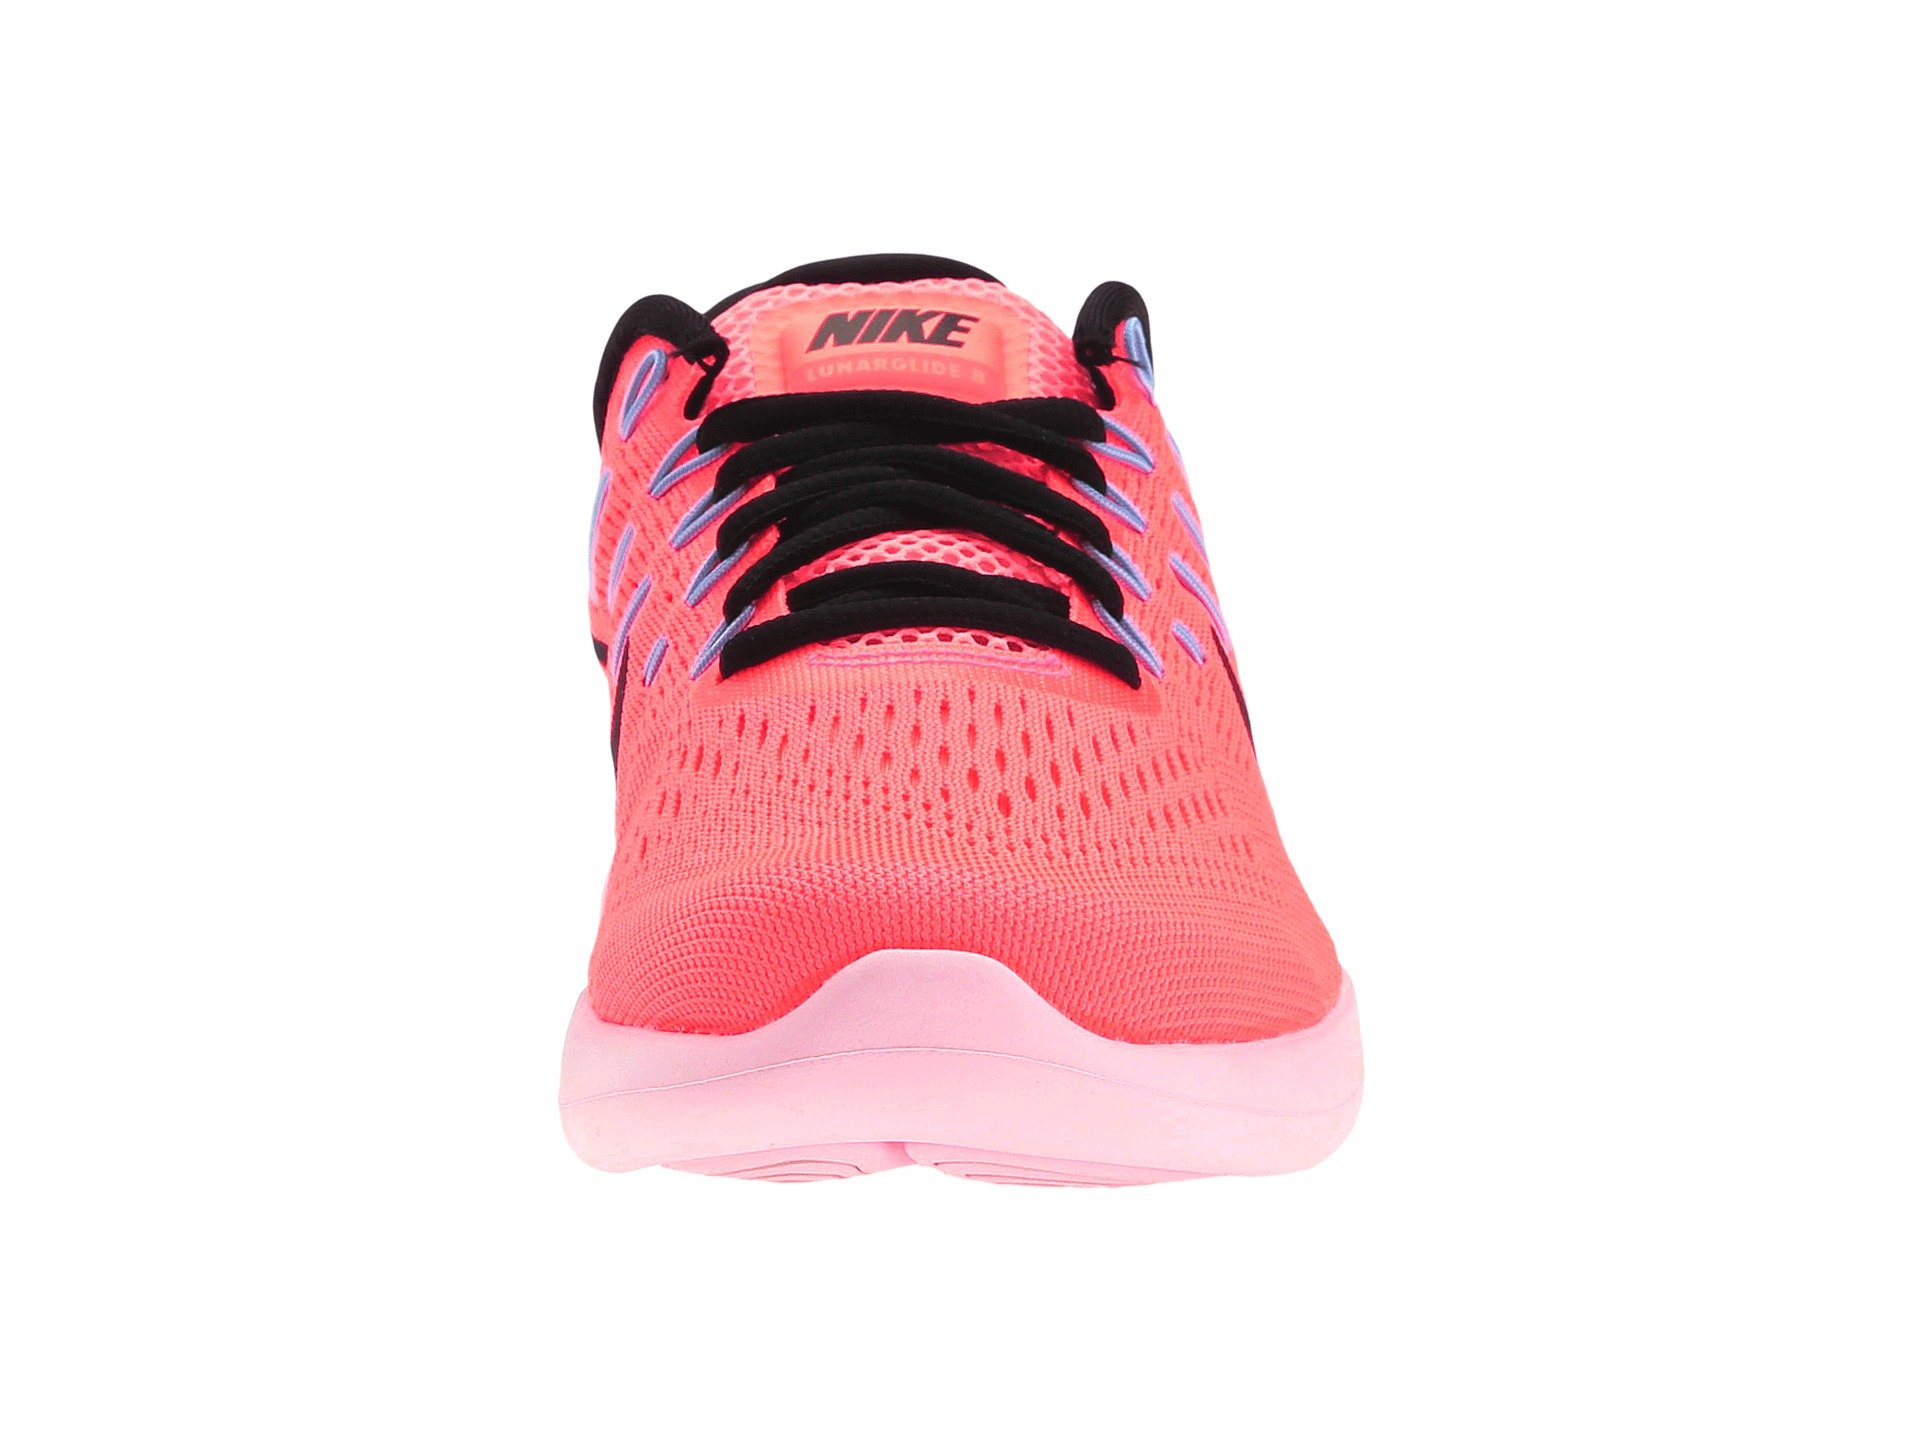 Nike Lunar Glide Hot Pink Black And Green Athletic Shoes